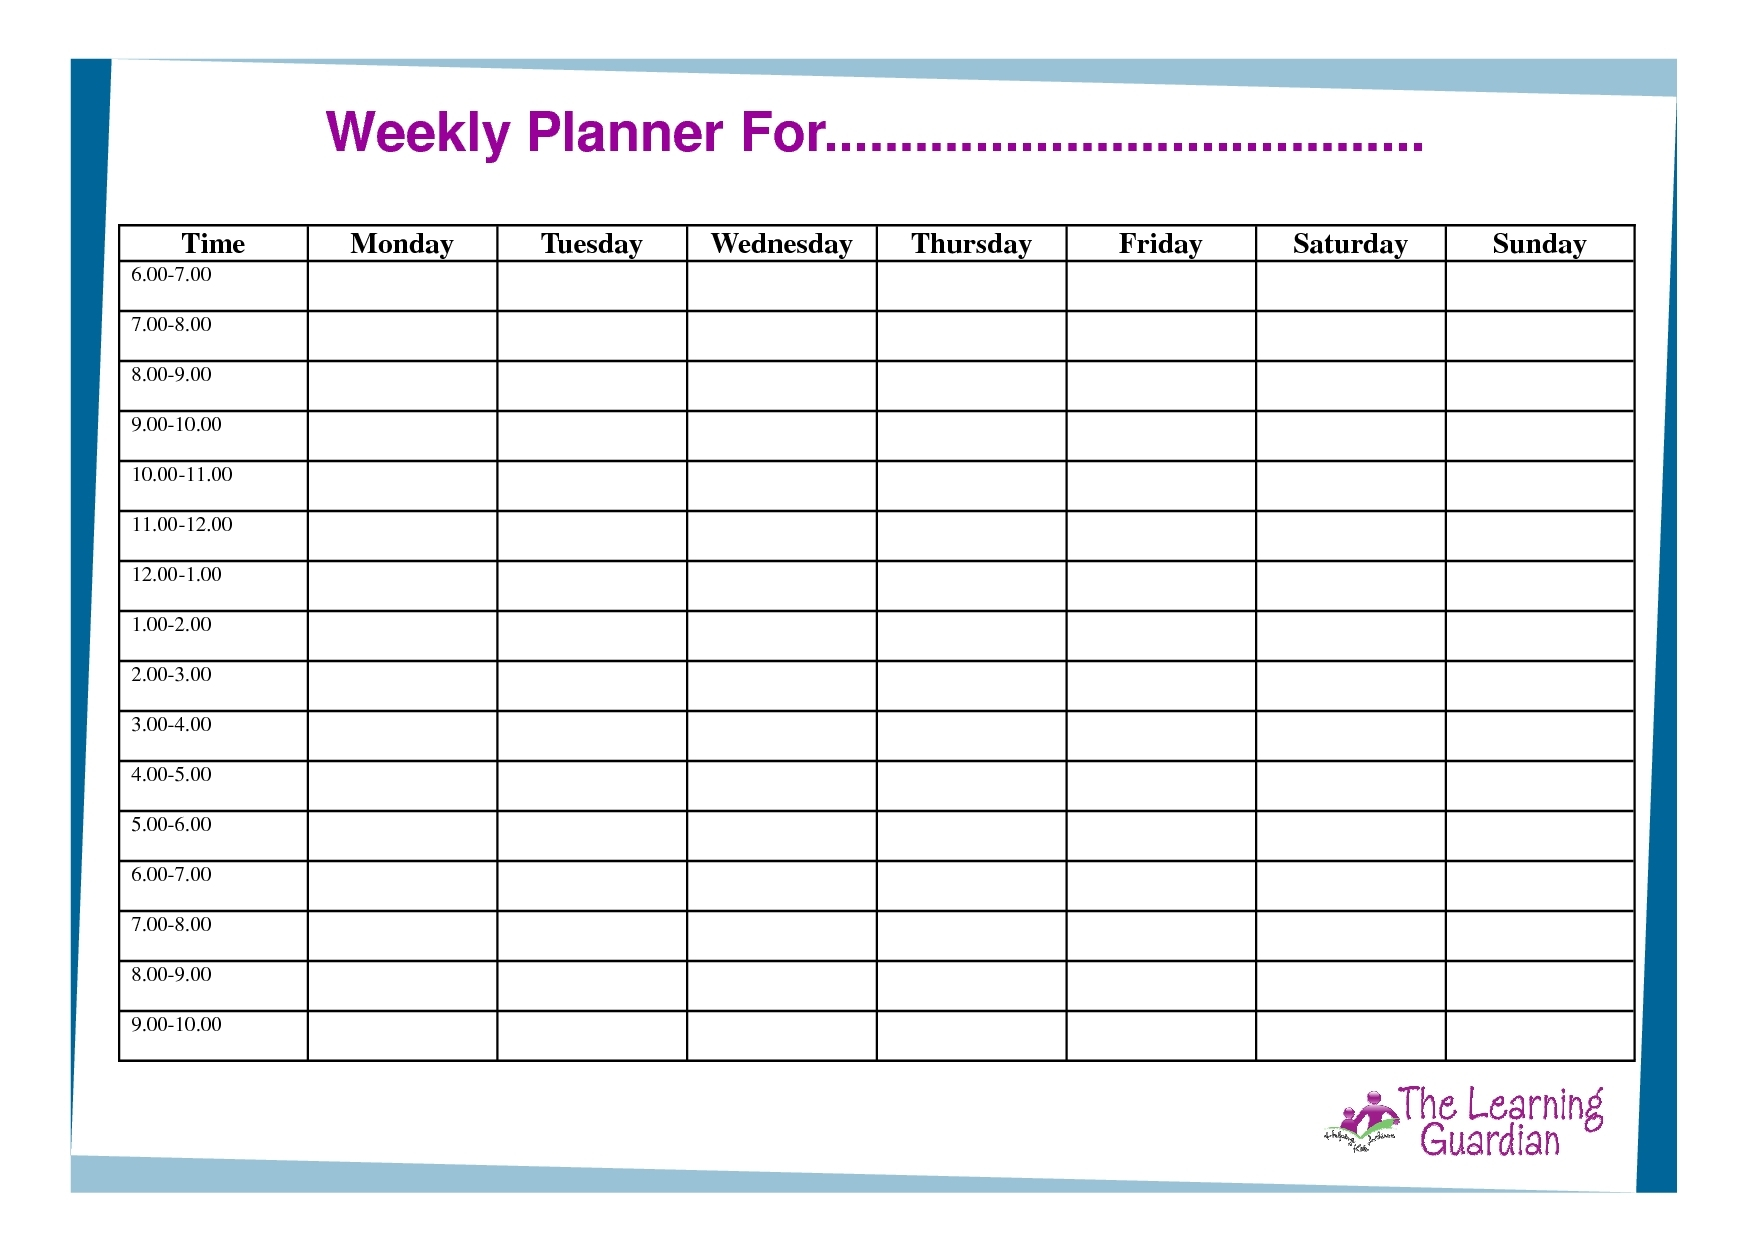 Printable Weekly Calendar Monday To Sunday – Template Free Printable Mondat Through Friday Weekly Calendar